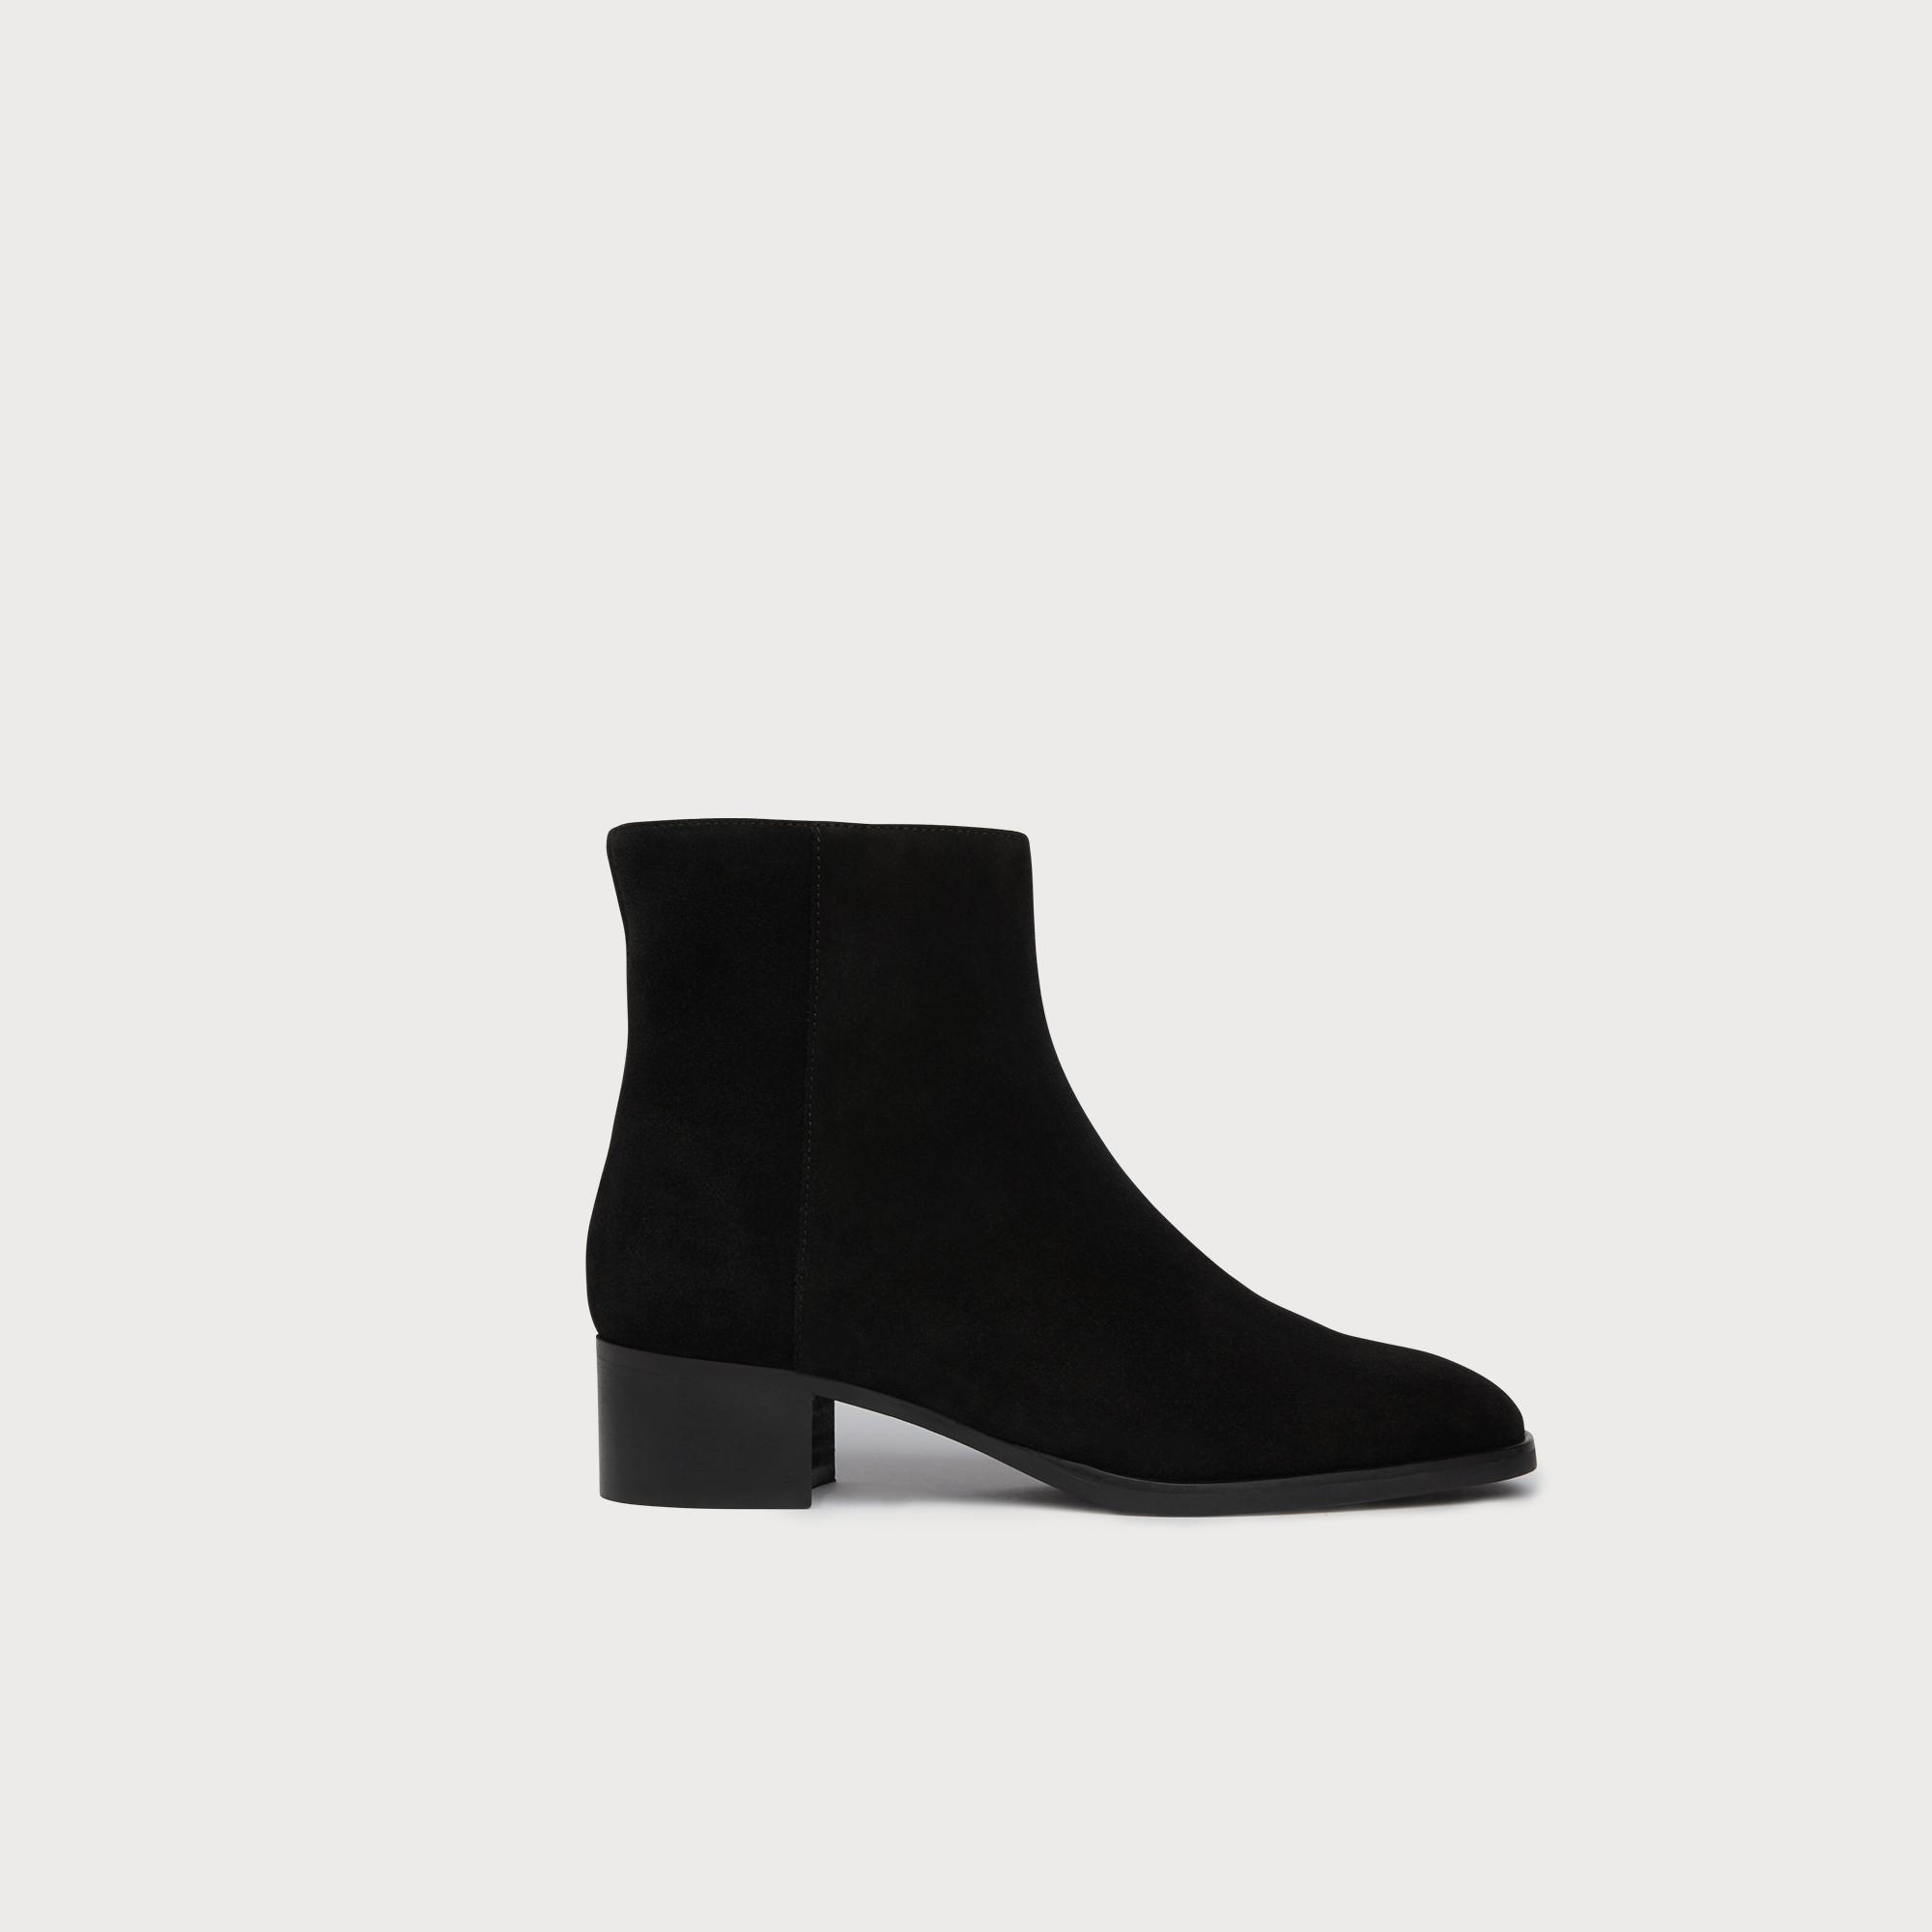 Ameli Black Suede Ankle Boots